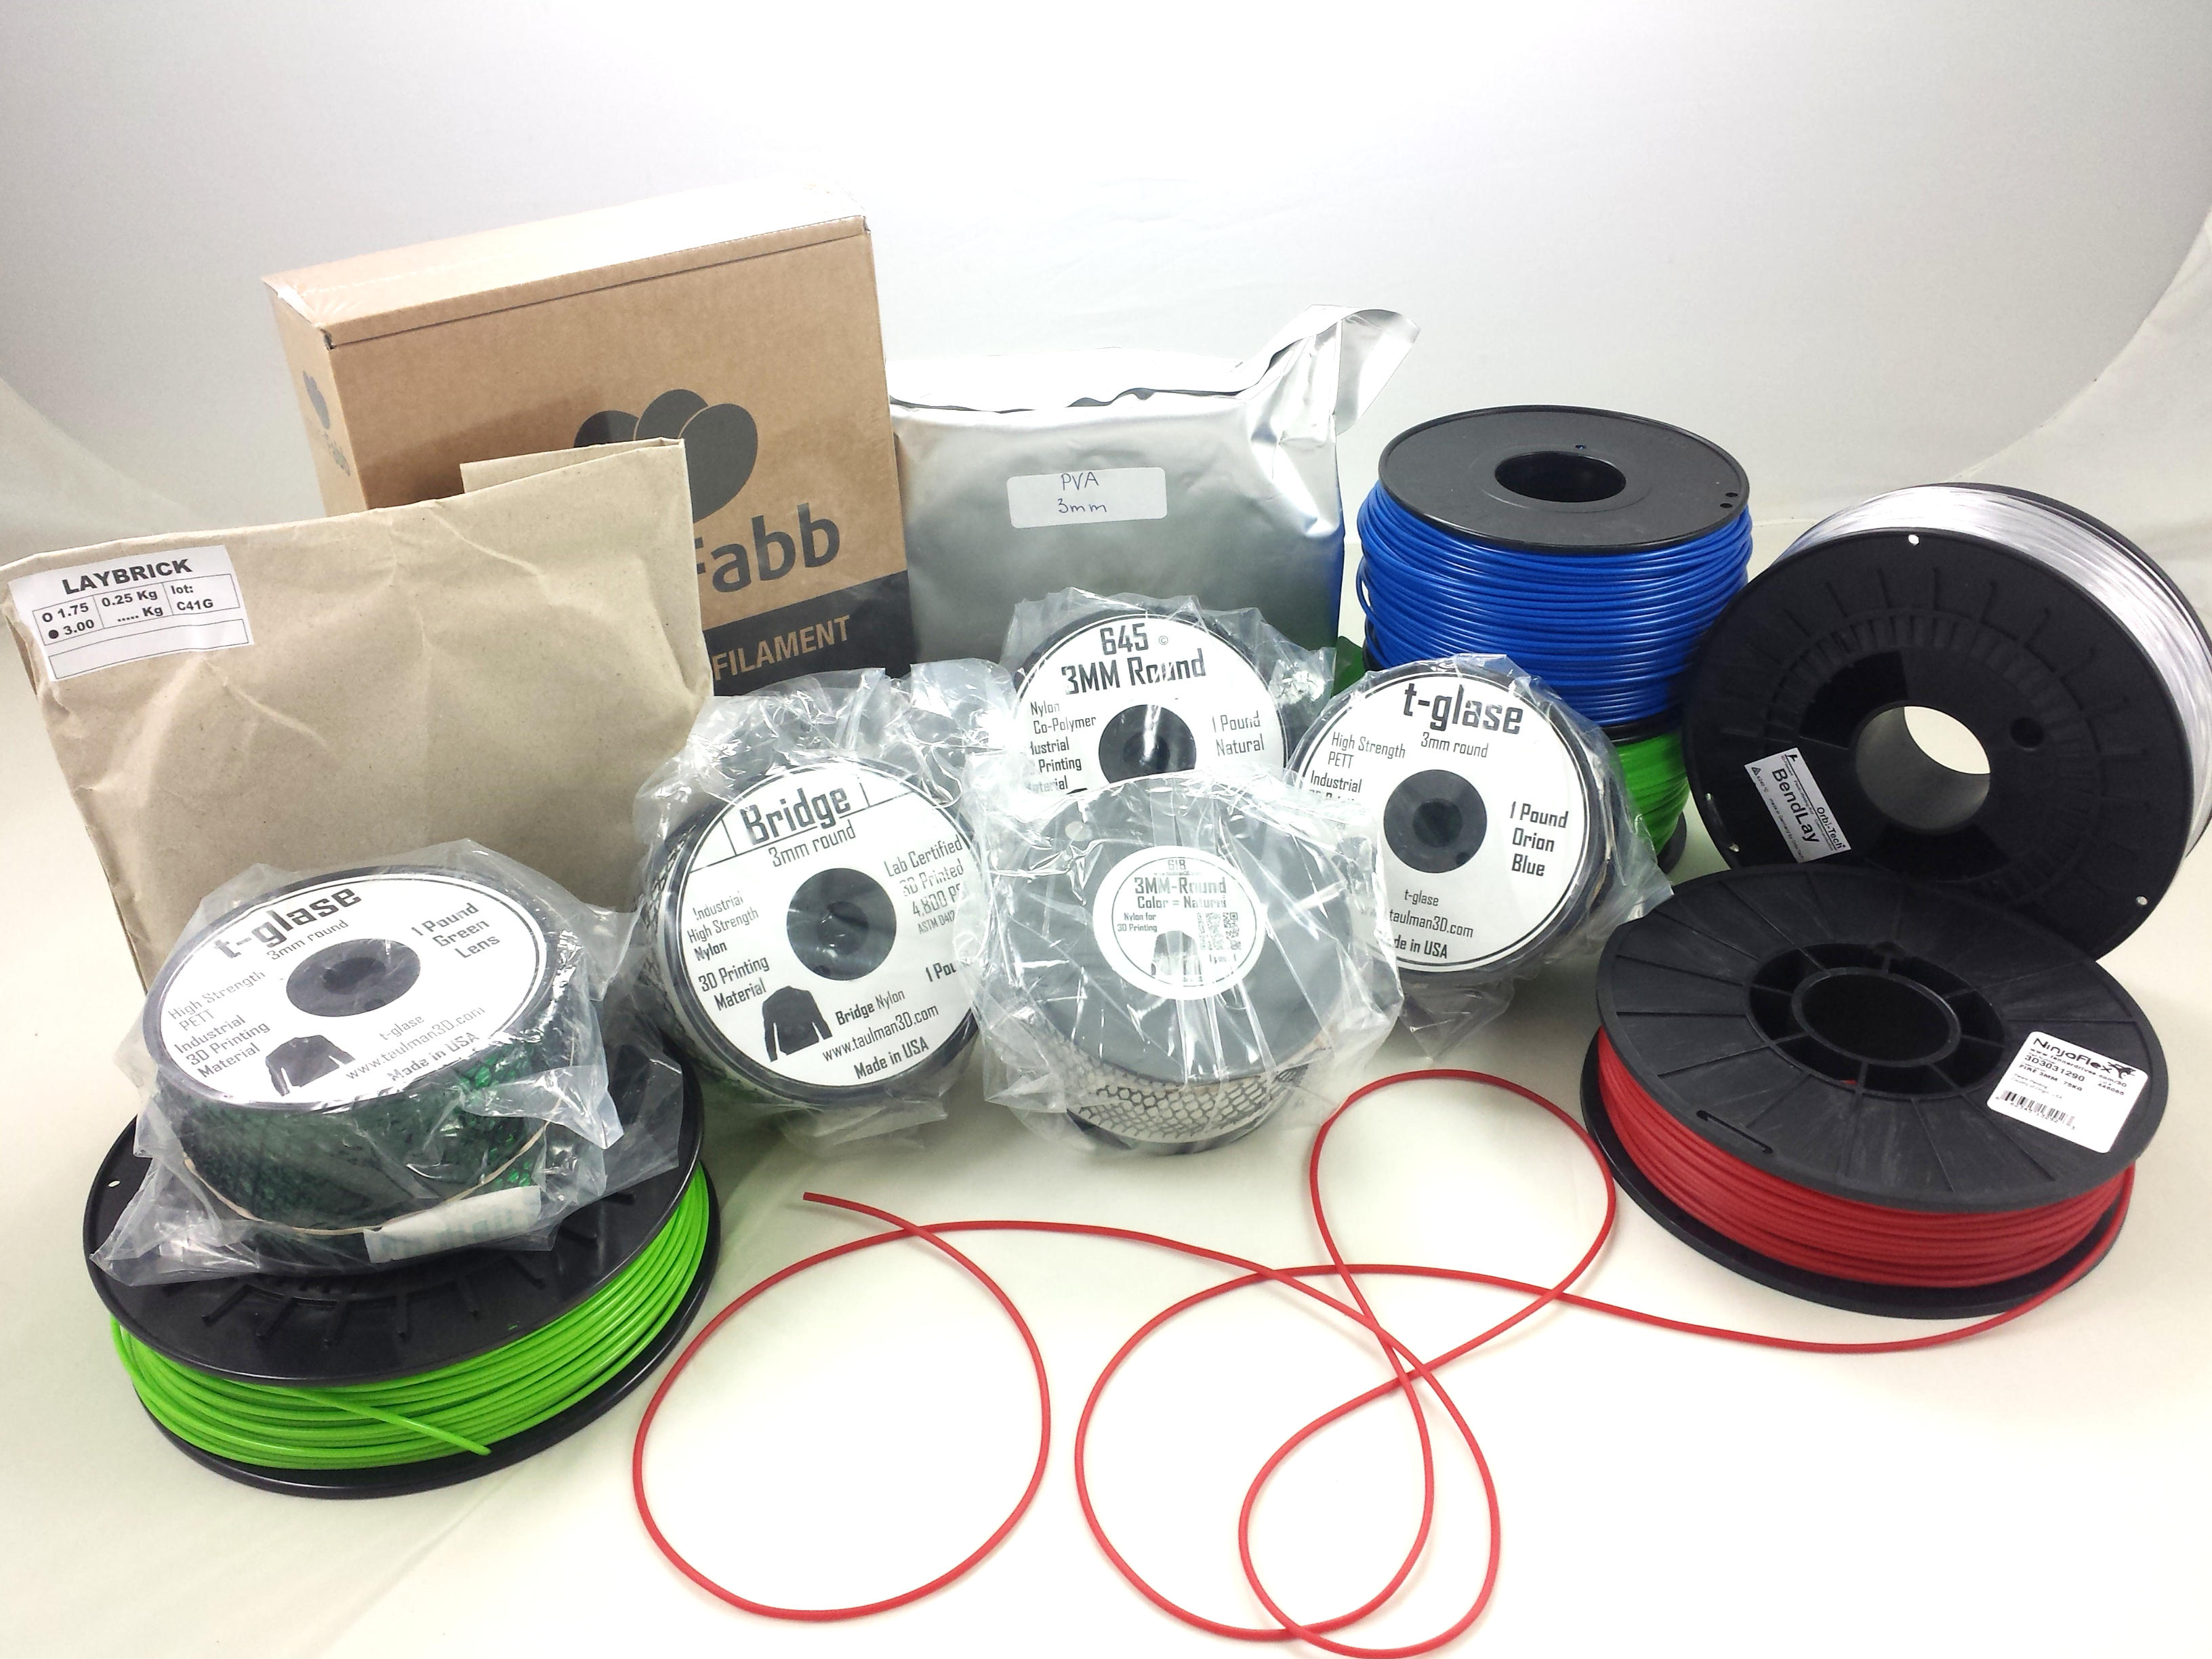 15% DISCOUNT on ALL 3MM filaments starting NOW ending monday at 23:59